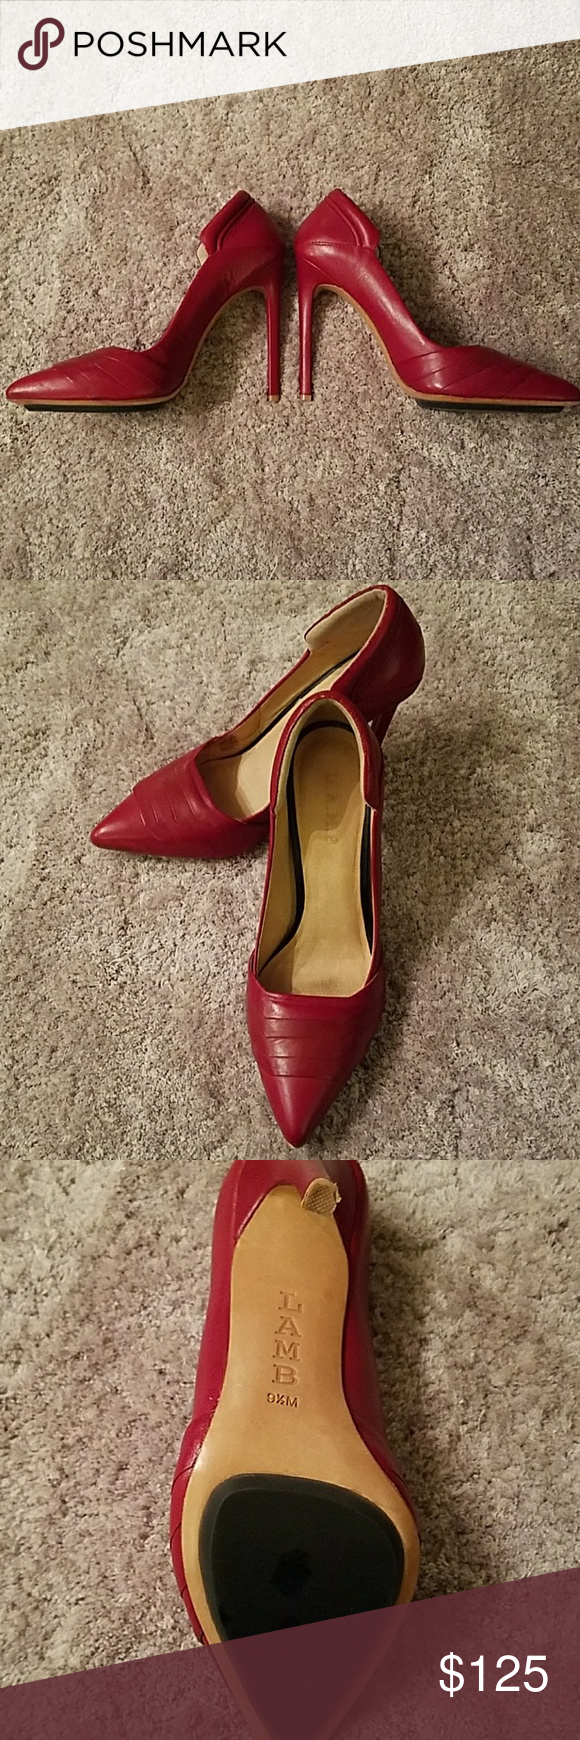 Hot red designer pumps In a word... sizzle!  Take your style to new heights with  the shoes I ROCKED in Vegas! 4 1/2 inches of sheer perfection.  My podiatrist friend says that I can't.  My loss, your gain! L.A.M.B. Shoes Heels